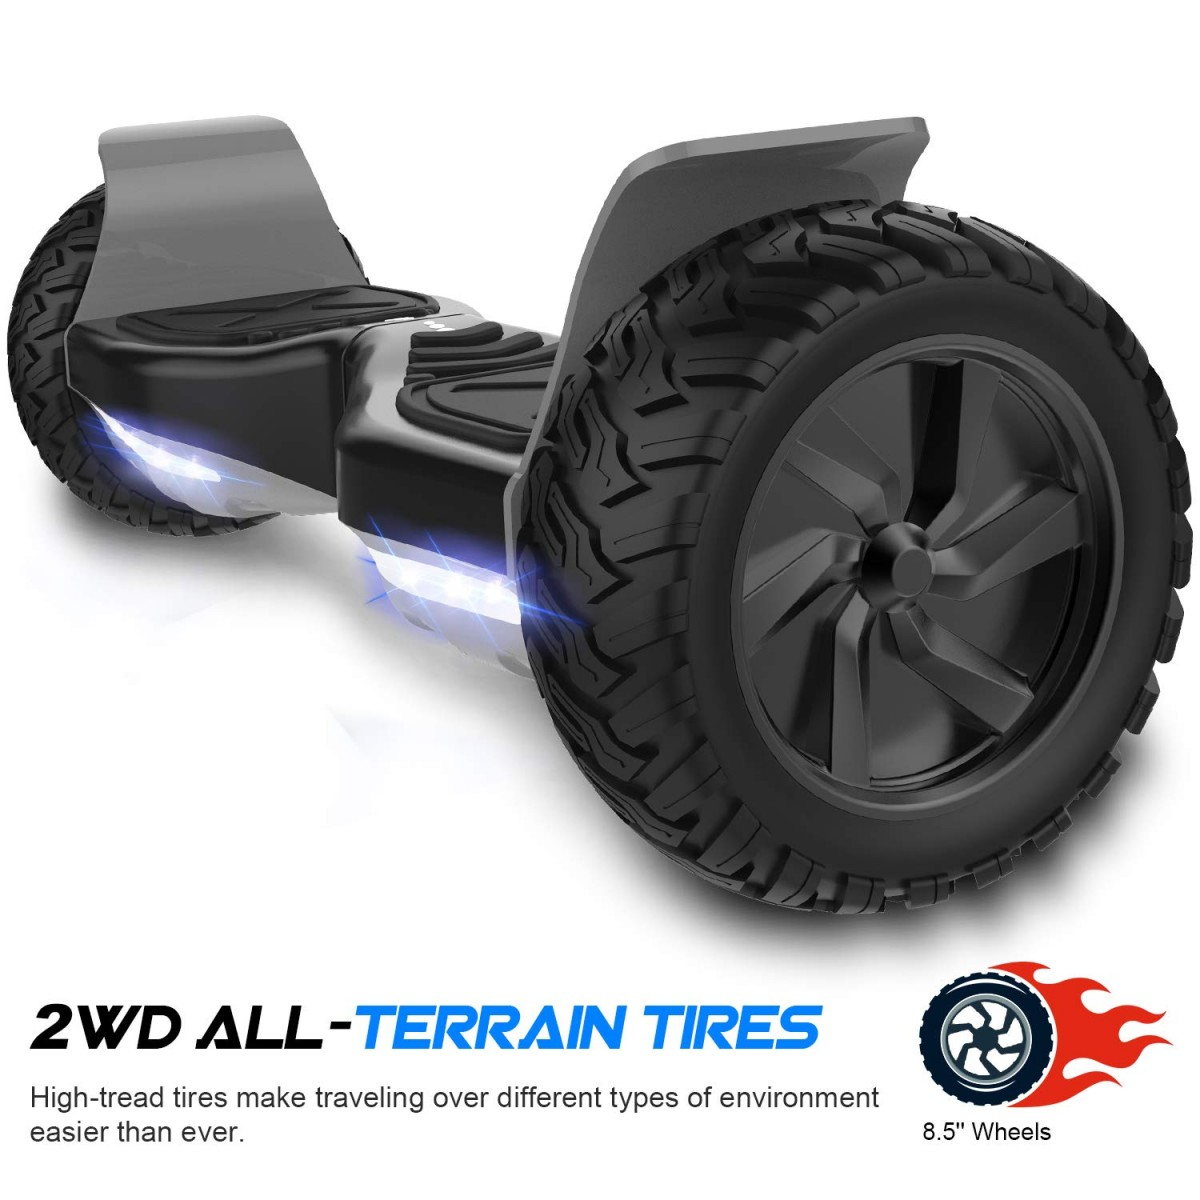 Hoverboard-2WD-T580 Hoverboard 2WD T580